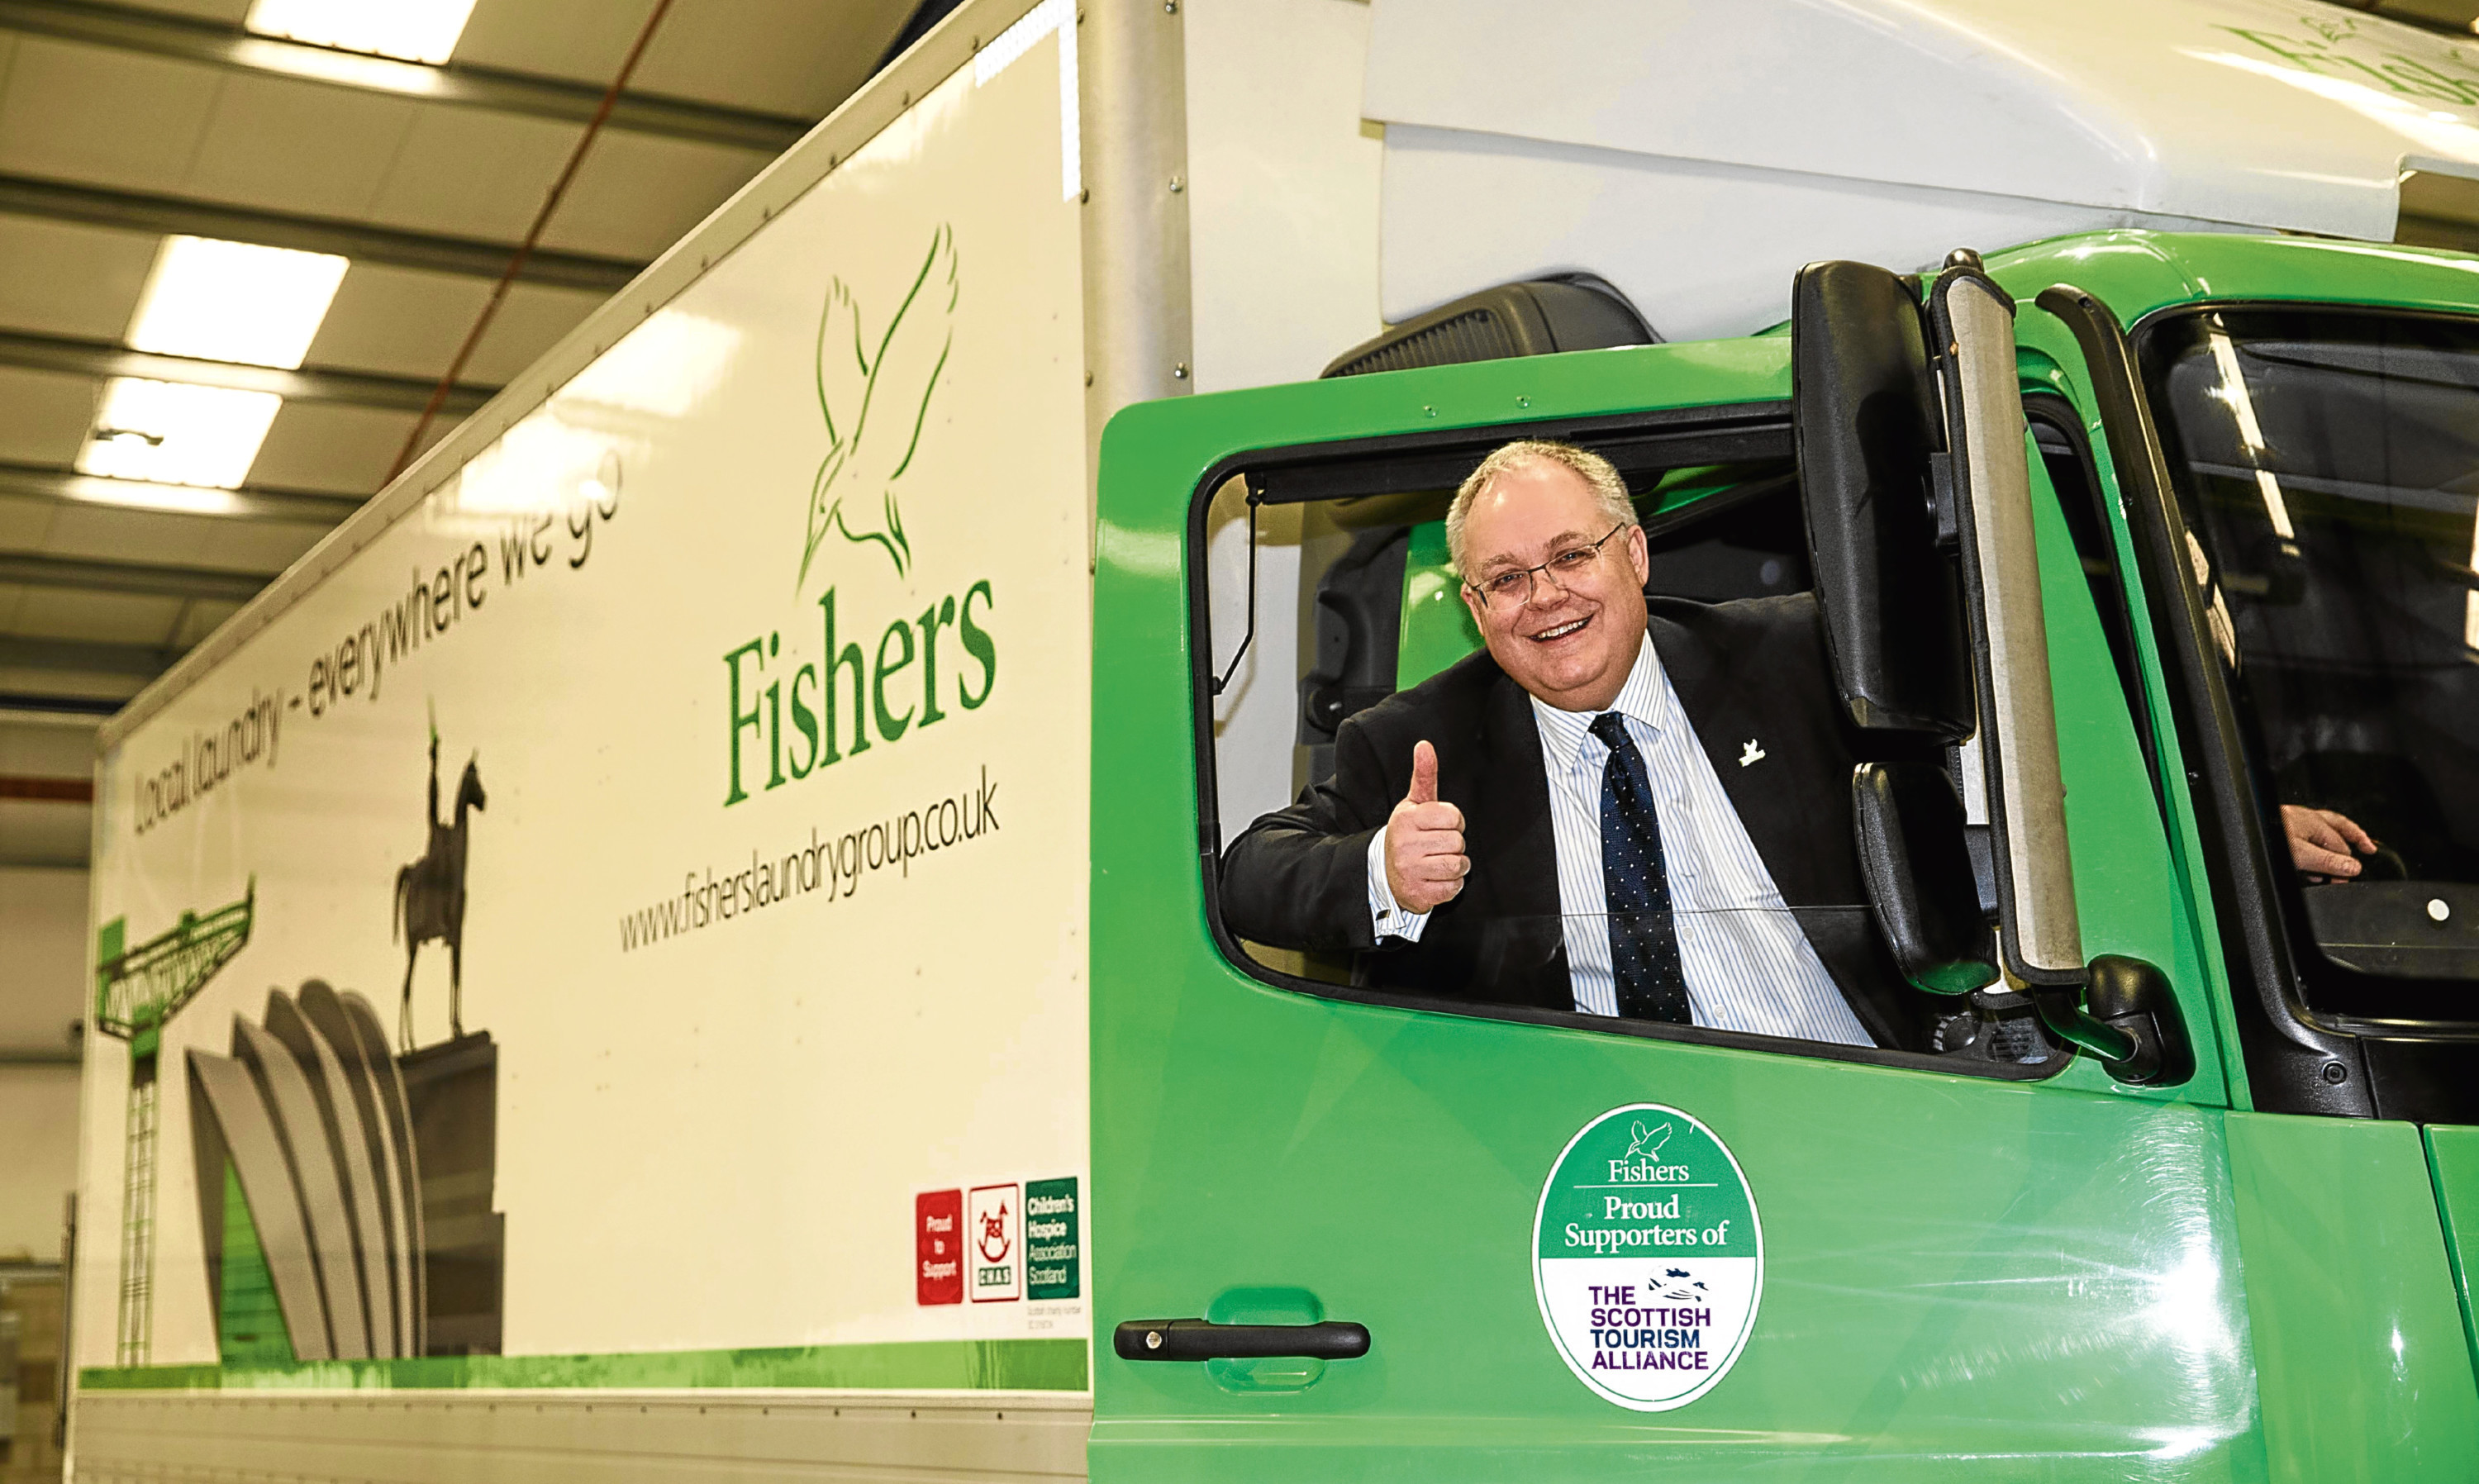 Fishers Laundry managing director Michael Jones